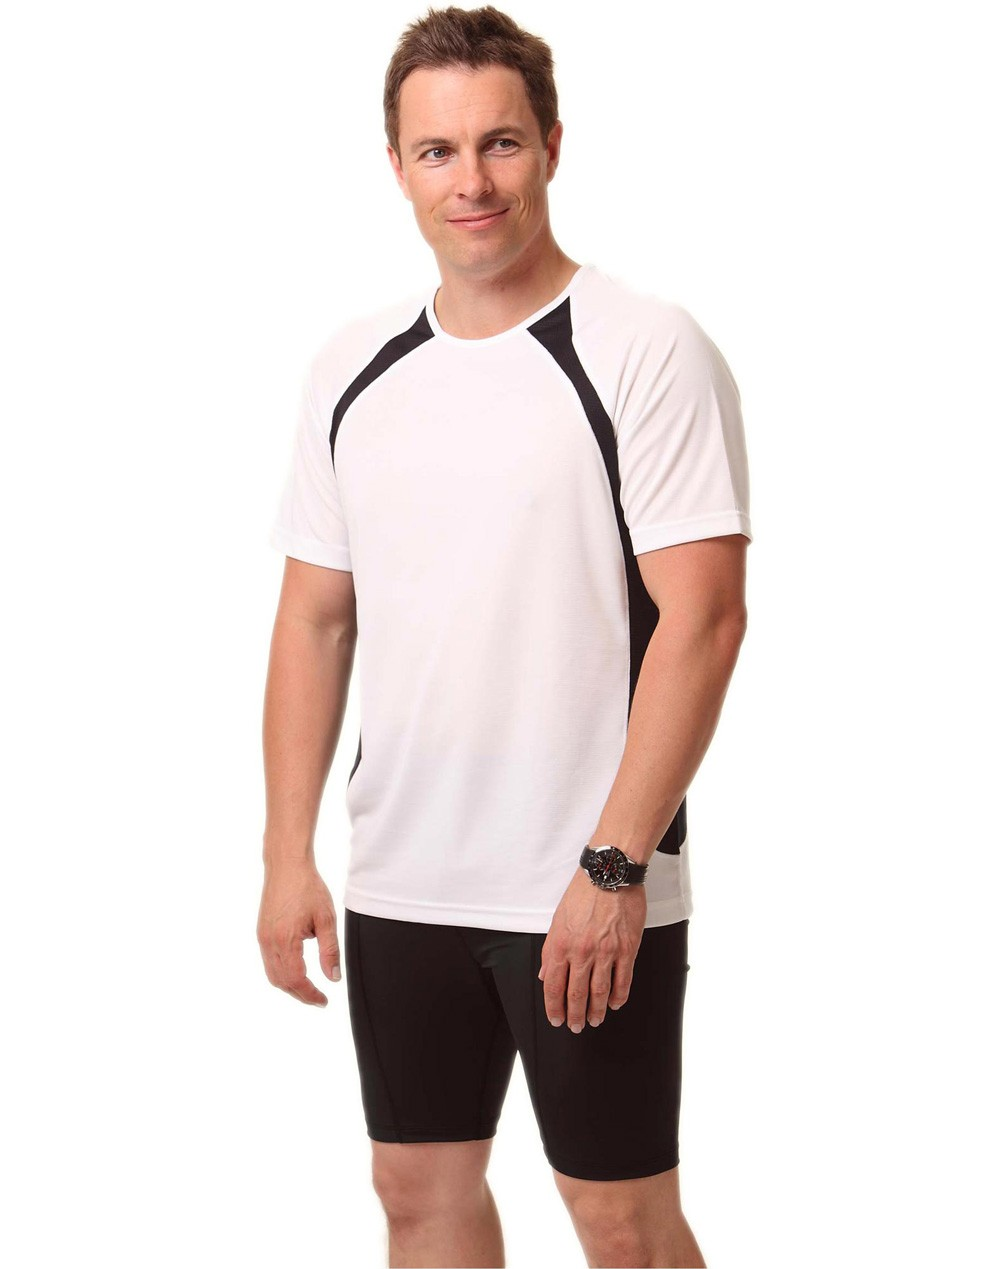 Winning Spirit Men's CoolDry® Athletic Tee Shirt